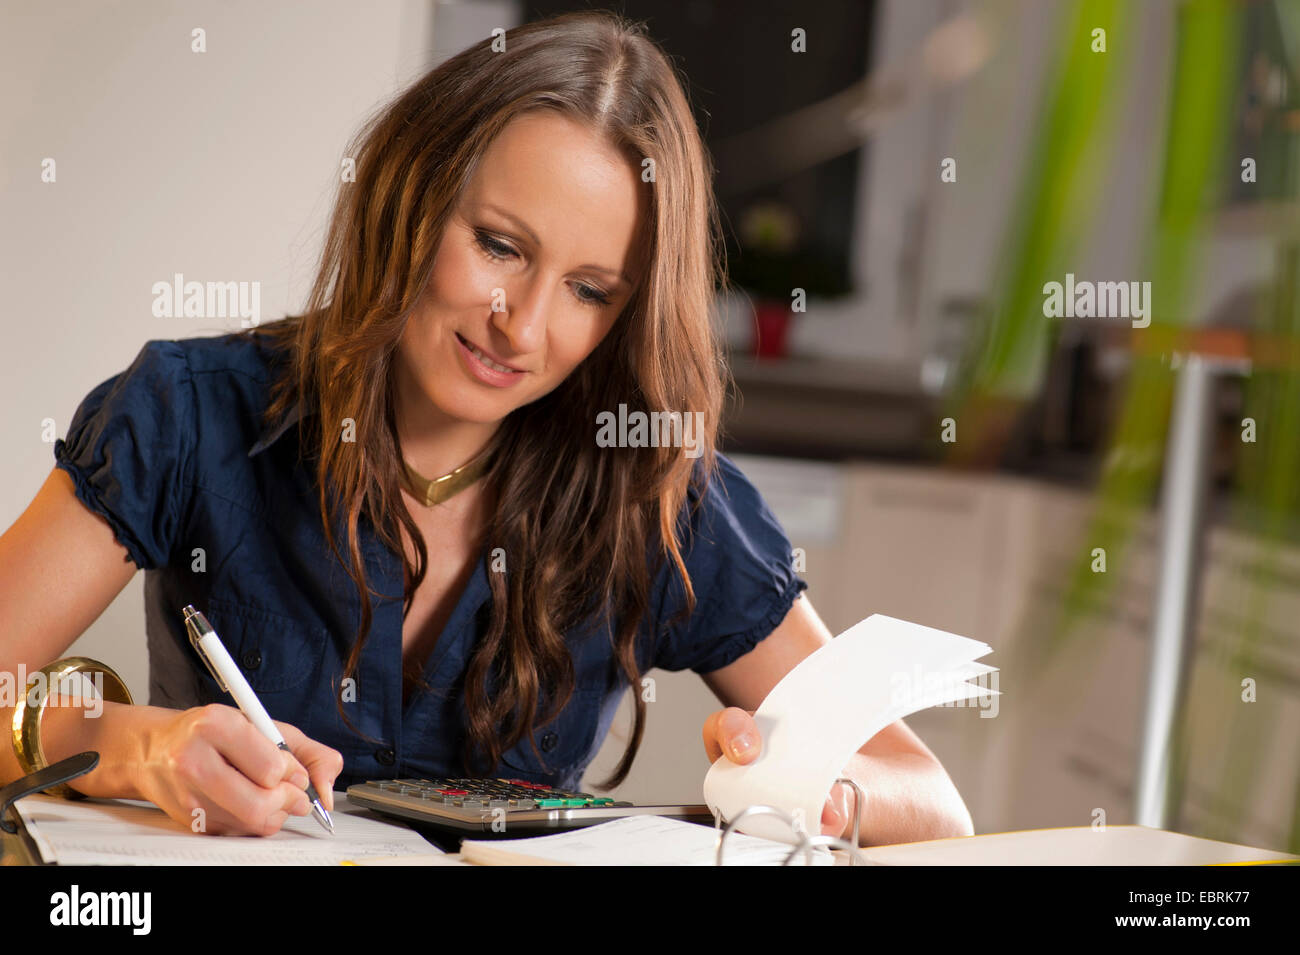 young woman sitting at her desk checking her bank statements with a content smile - Stock Image